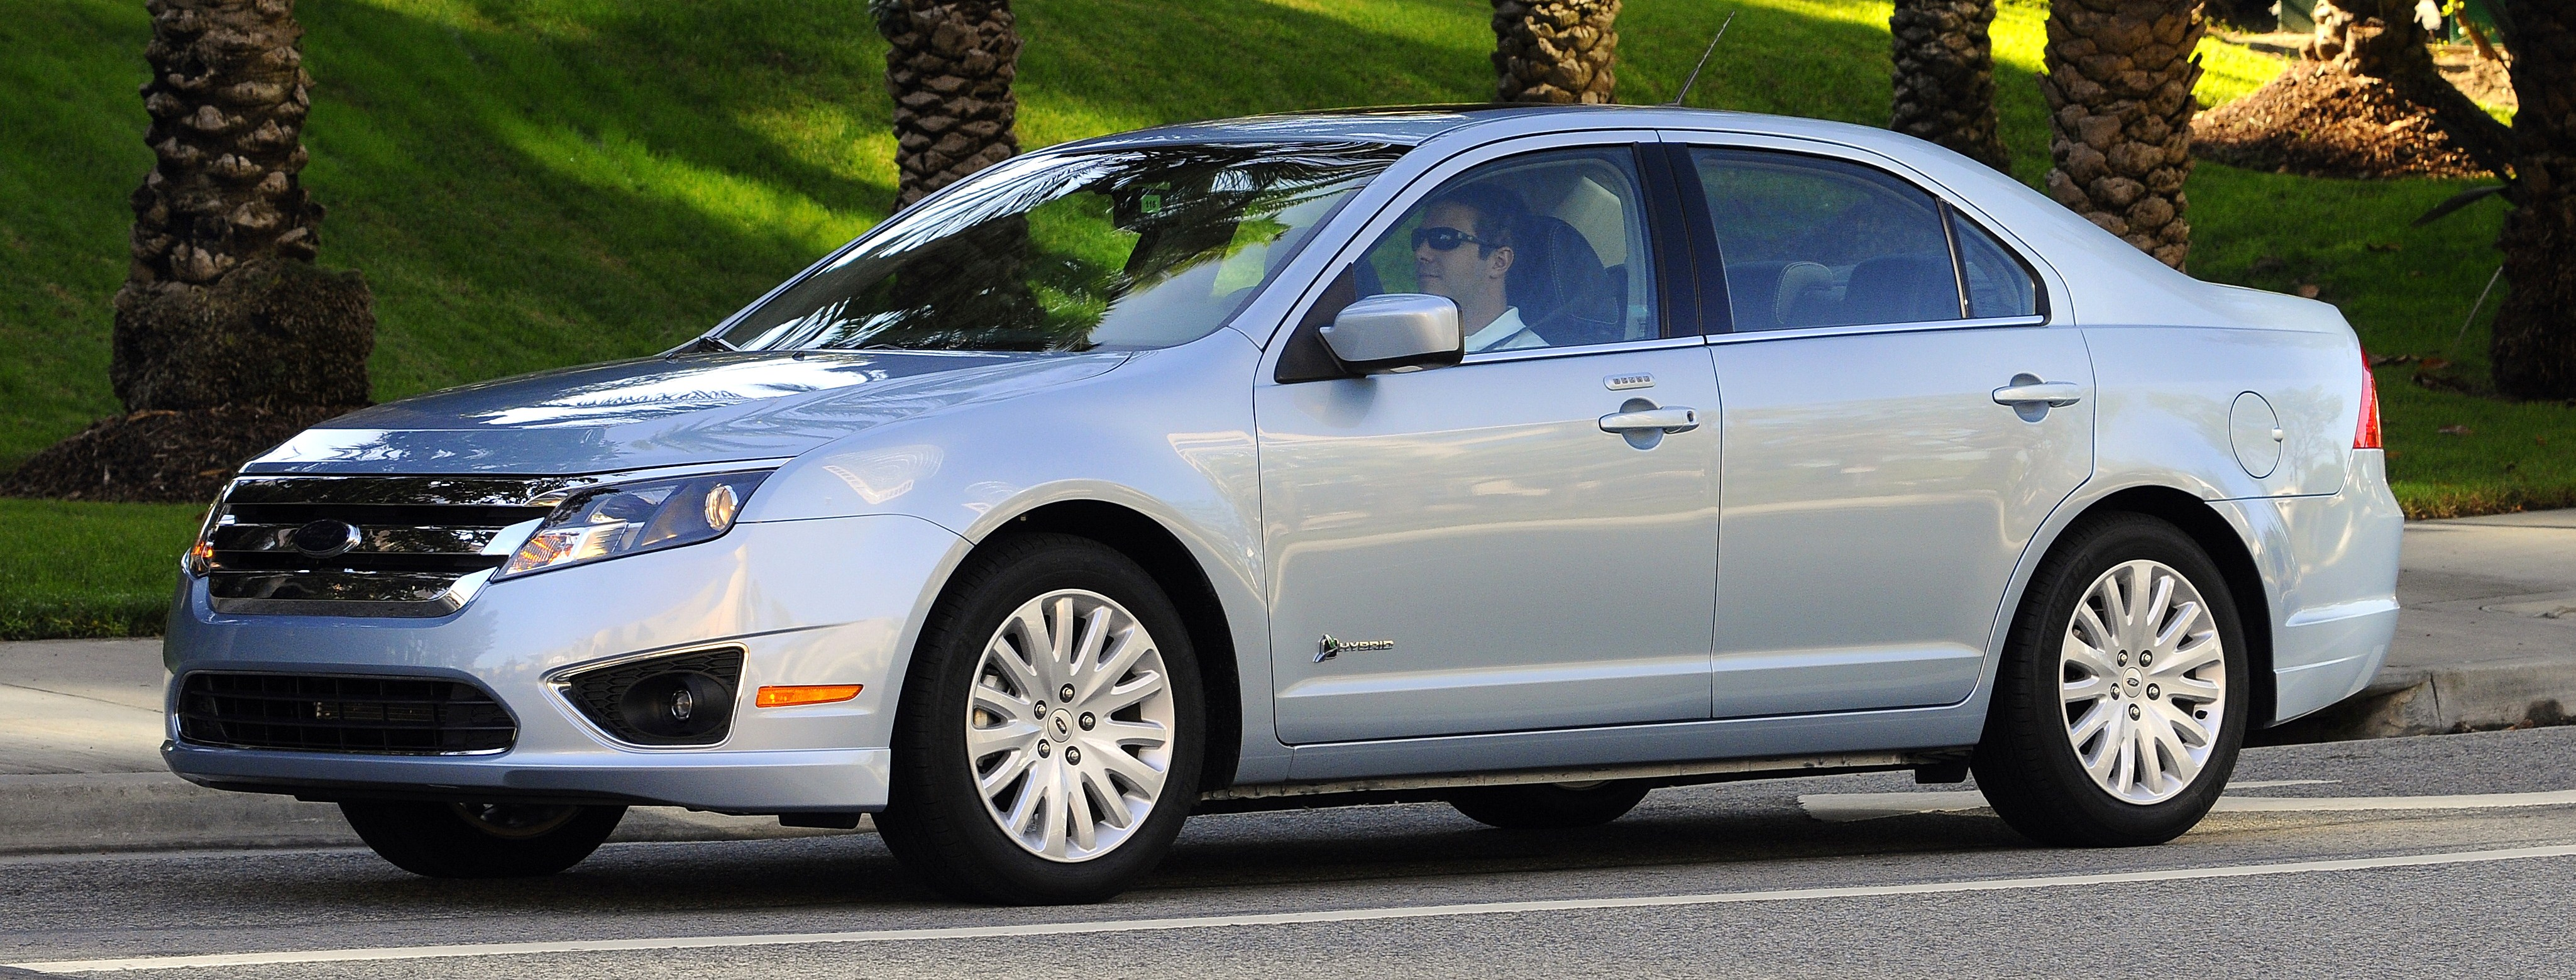 2010 Ford Fusion #4